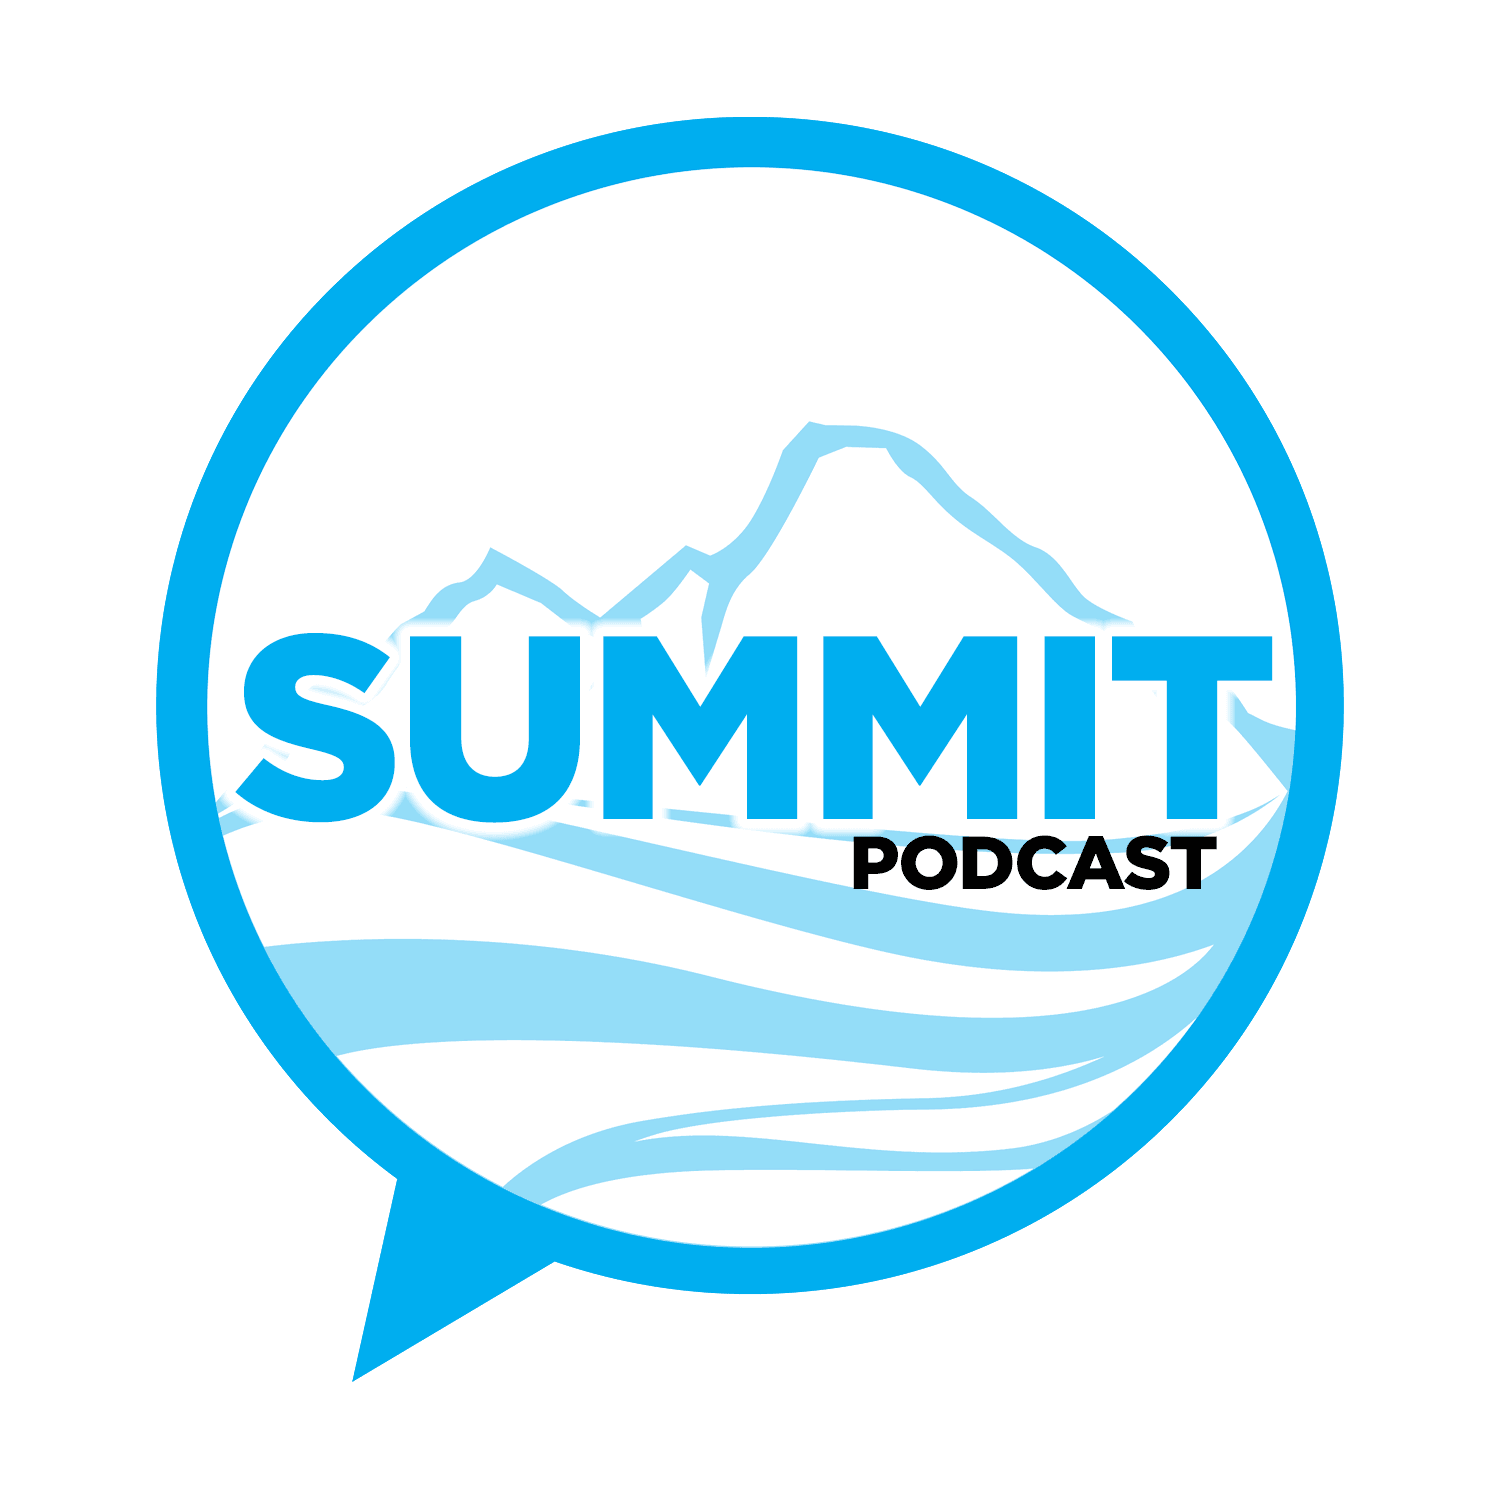 Summit Podcast for business growth